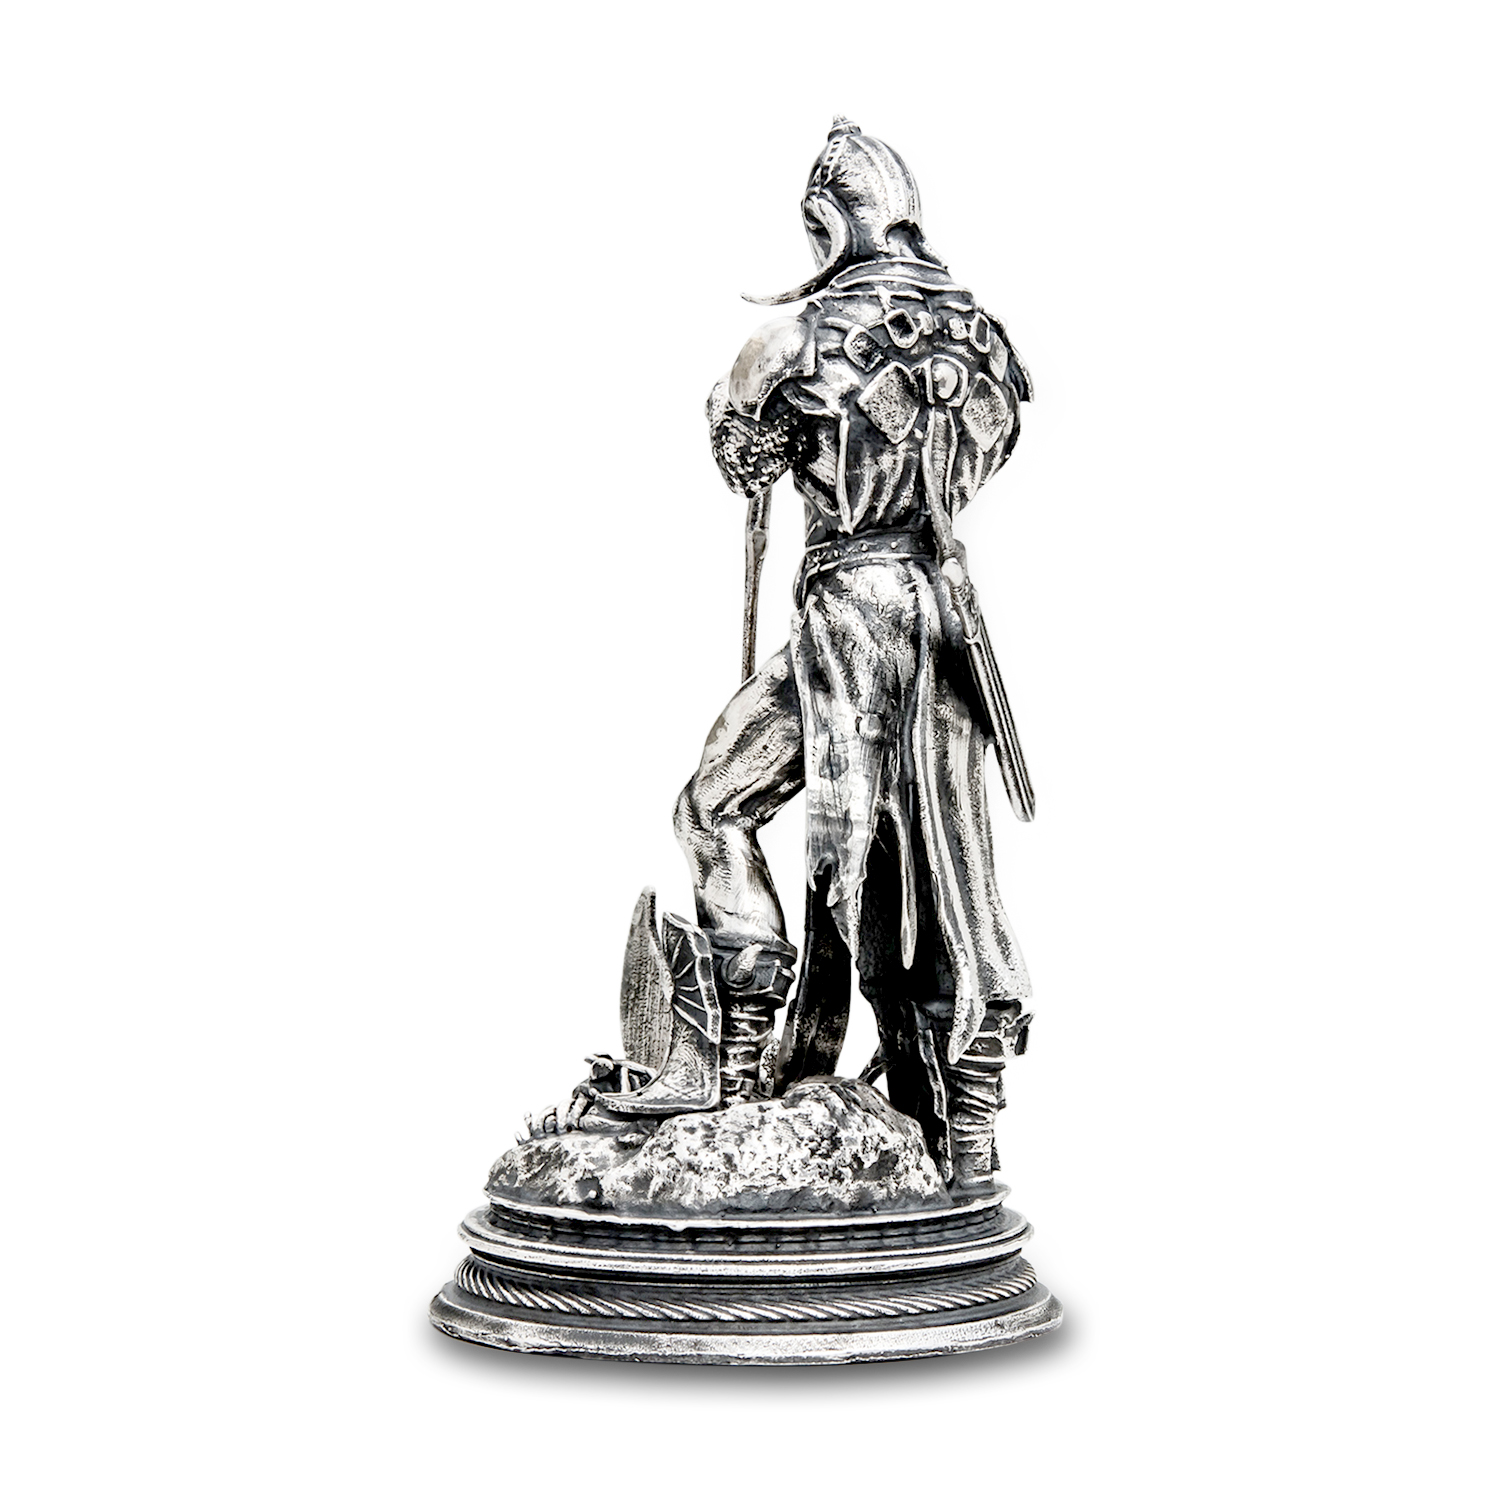 6 oz Silver Antique Statue - Frank Frazetta (Death Dealer III)